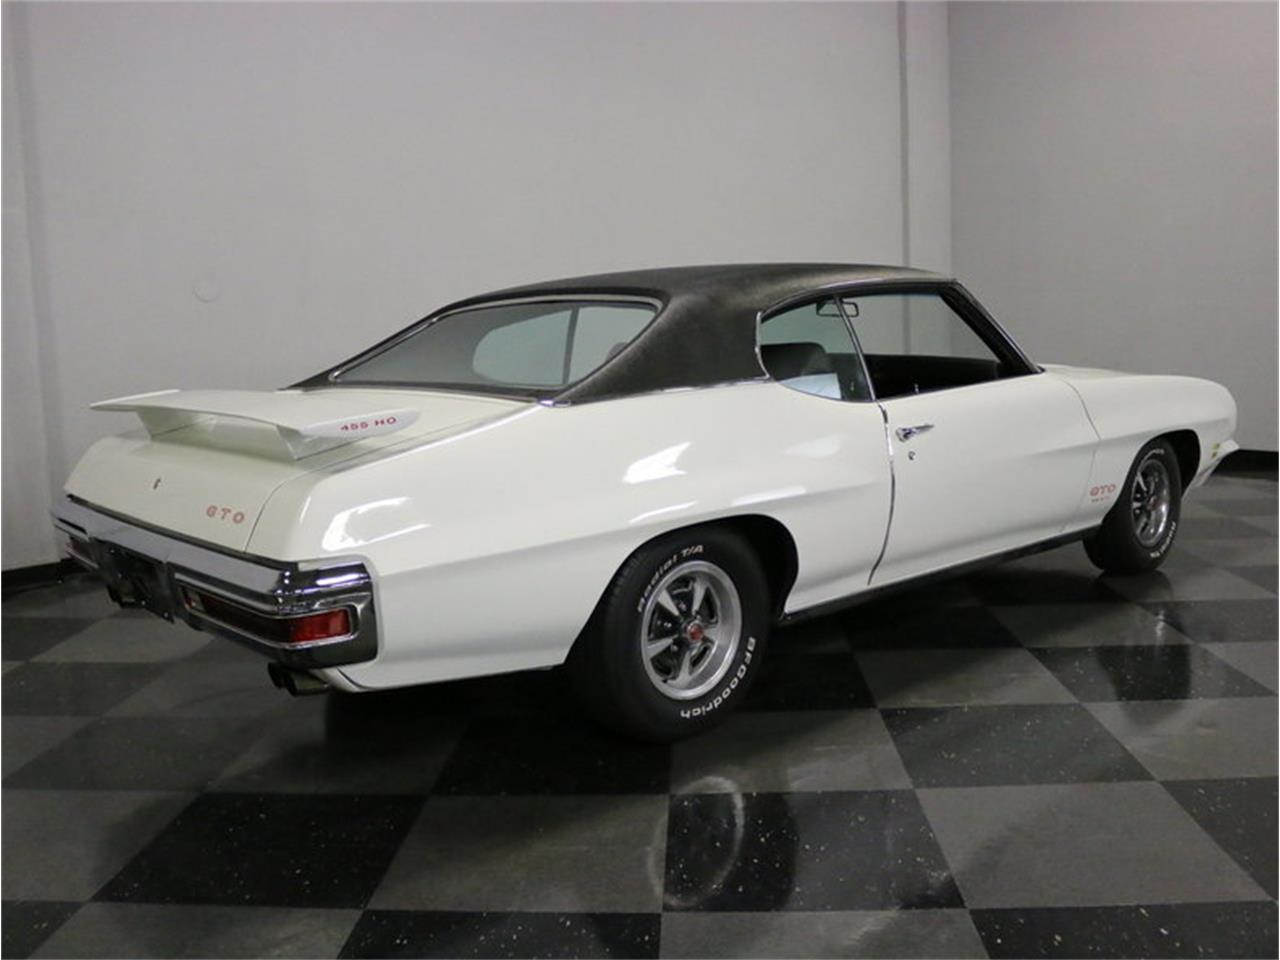 Large Picture of Classic '71 GTO located in Texas - $39,995.00 Offered by Streetside Classics - Dallas / Fort Worth - MOBK